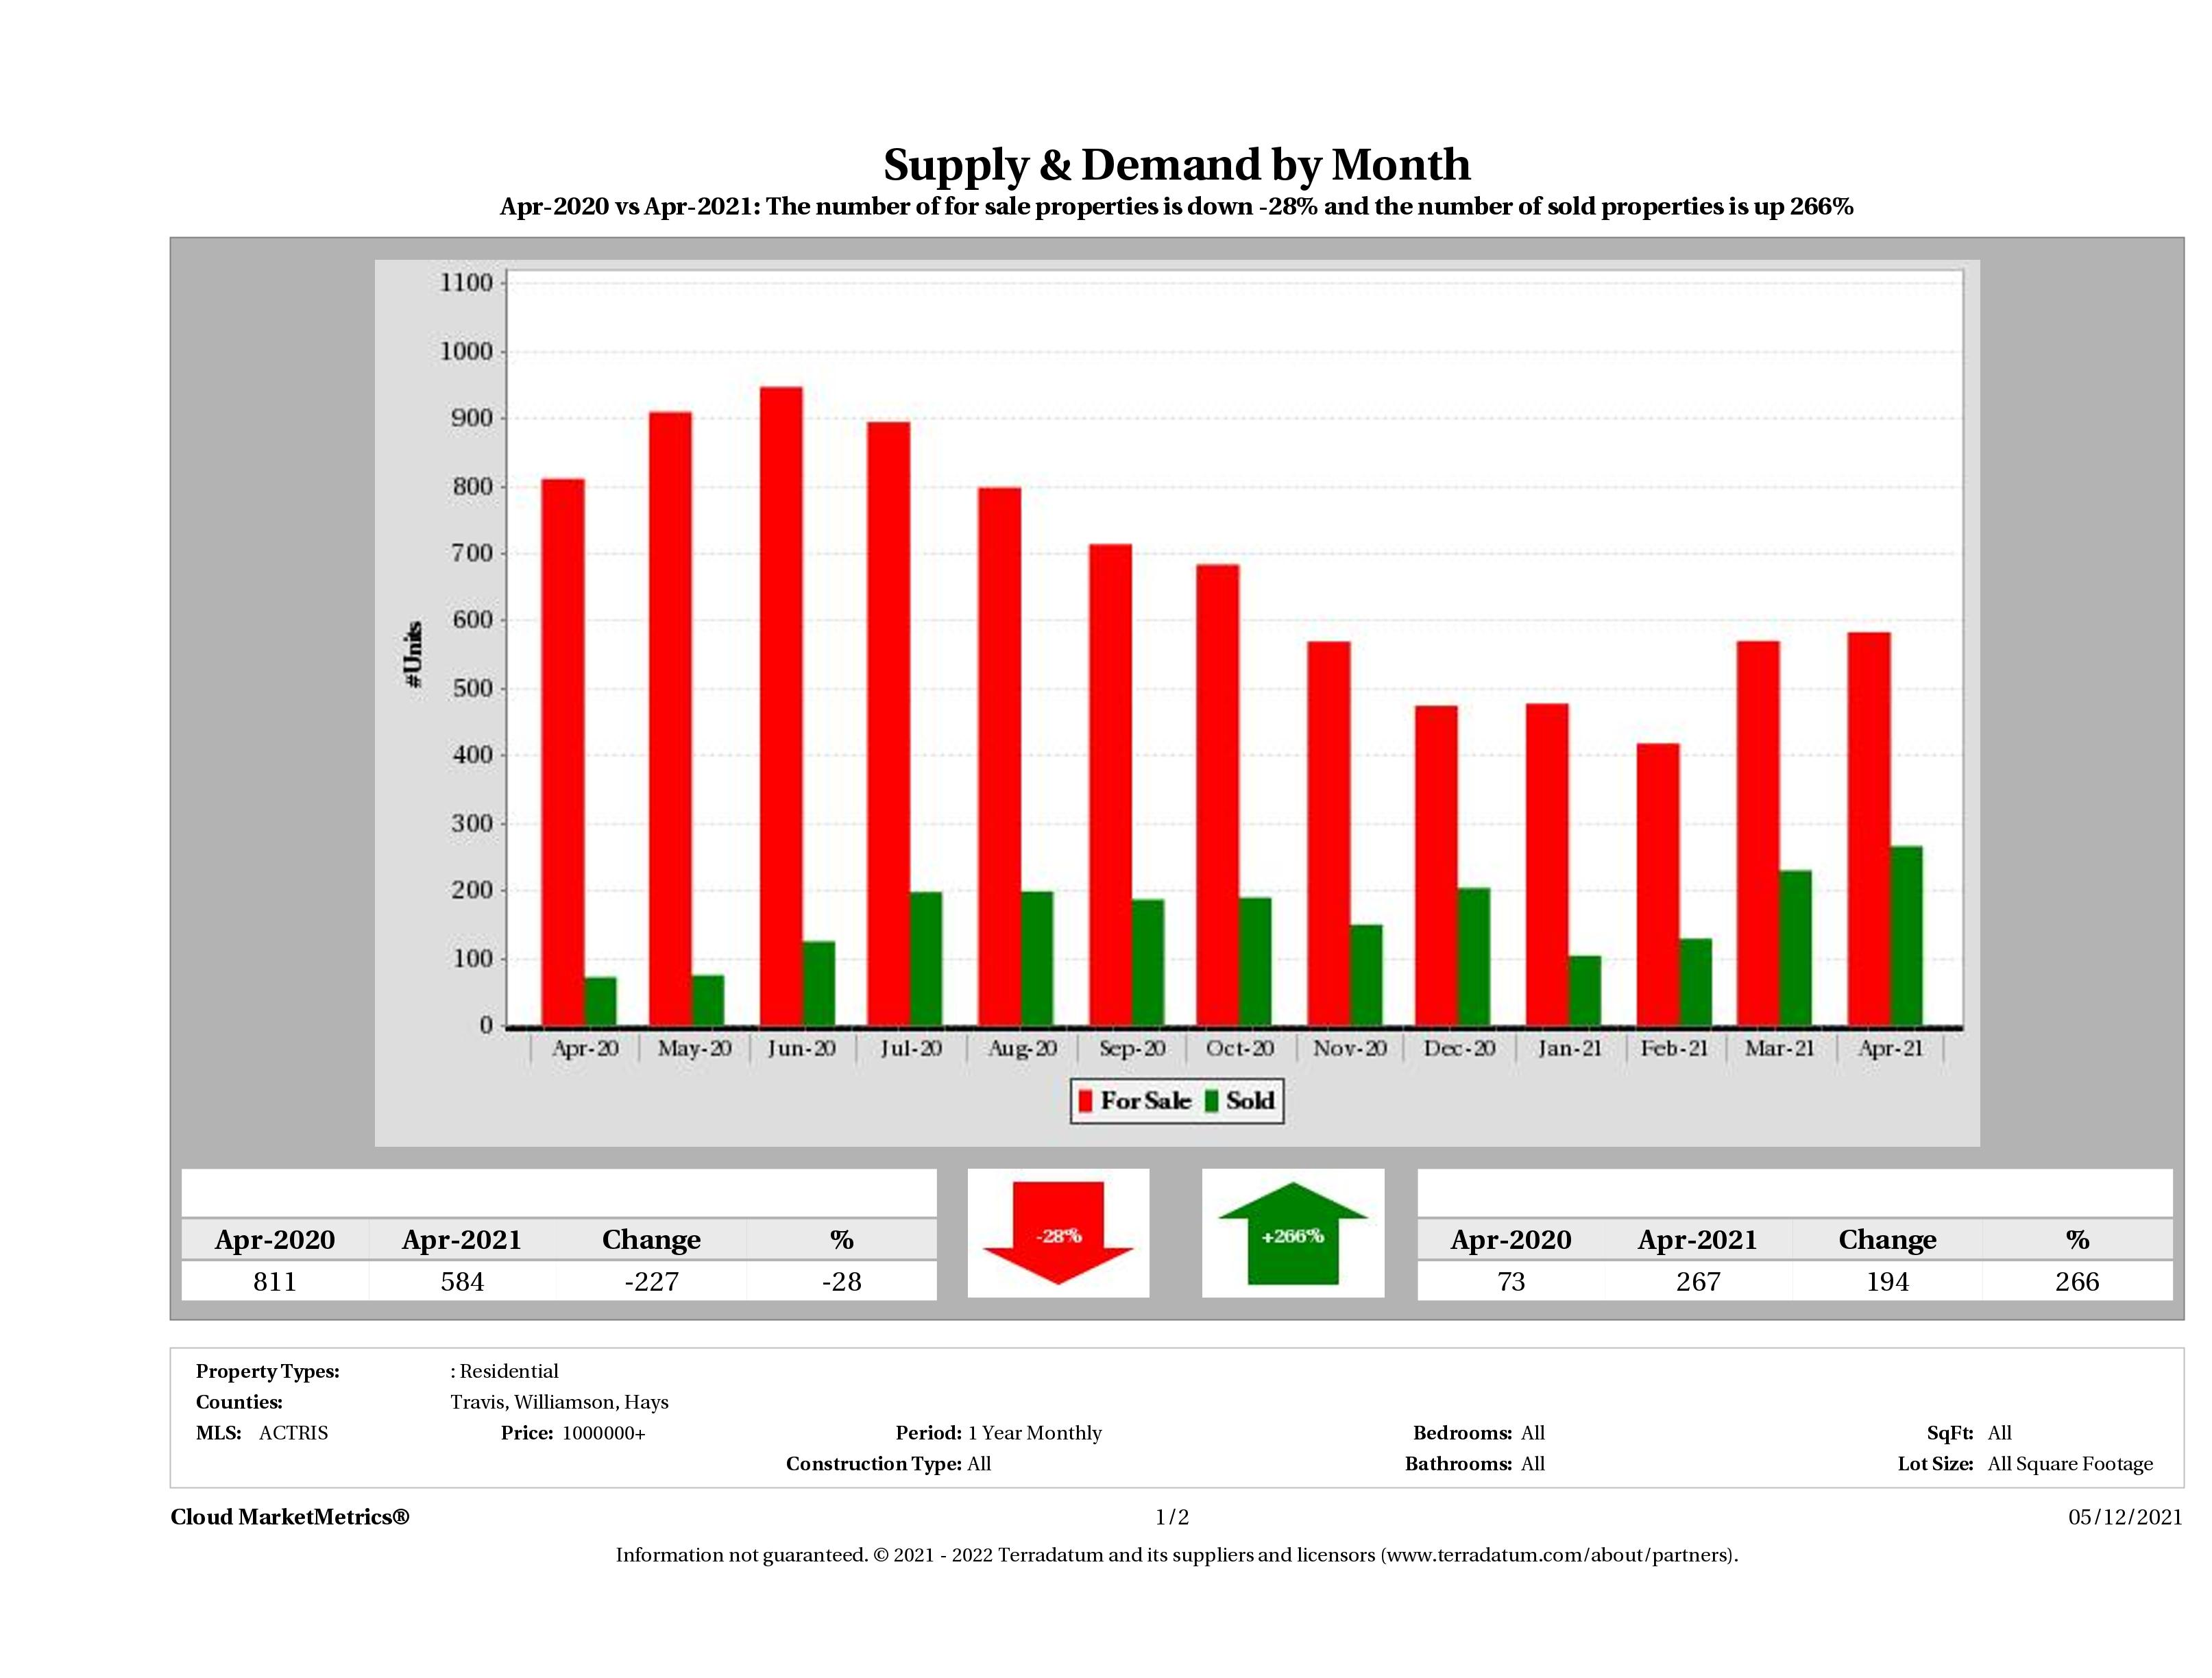 Austin luxury real estate market supply and demand April 2021